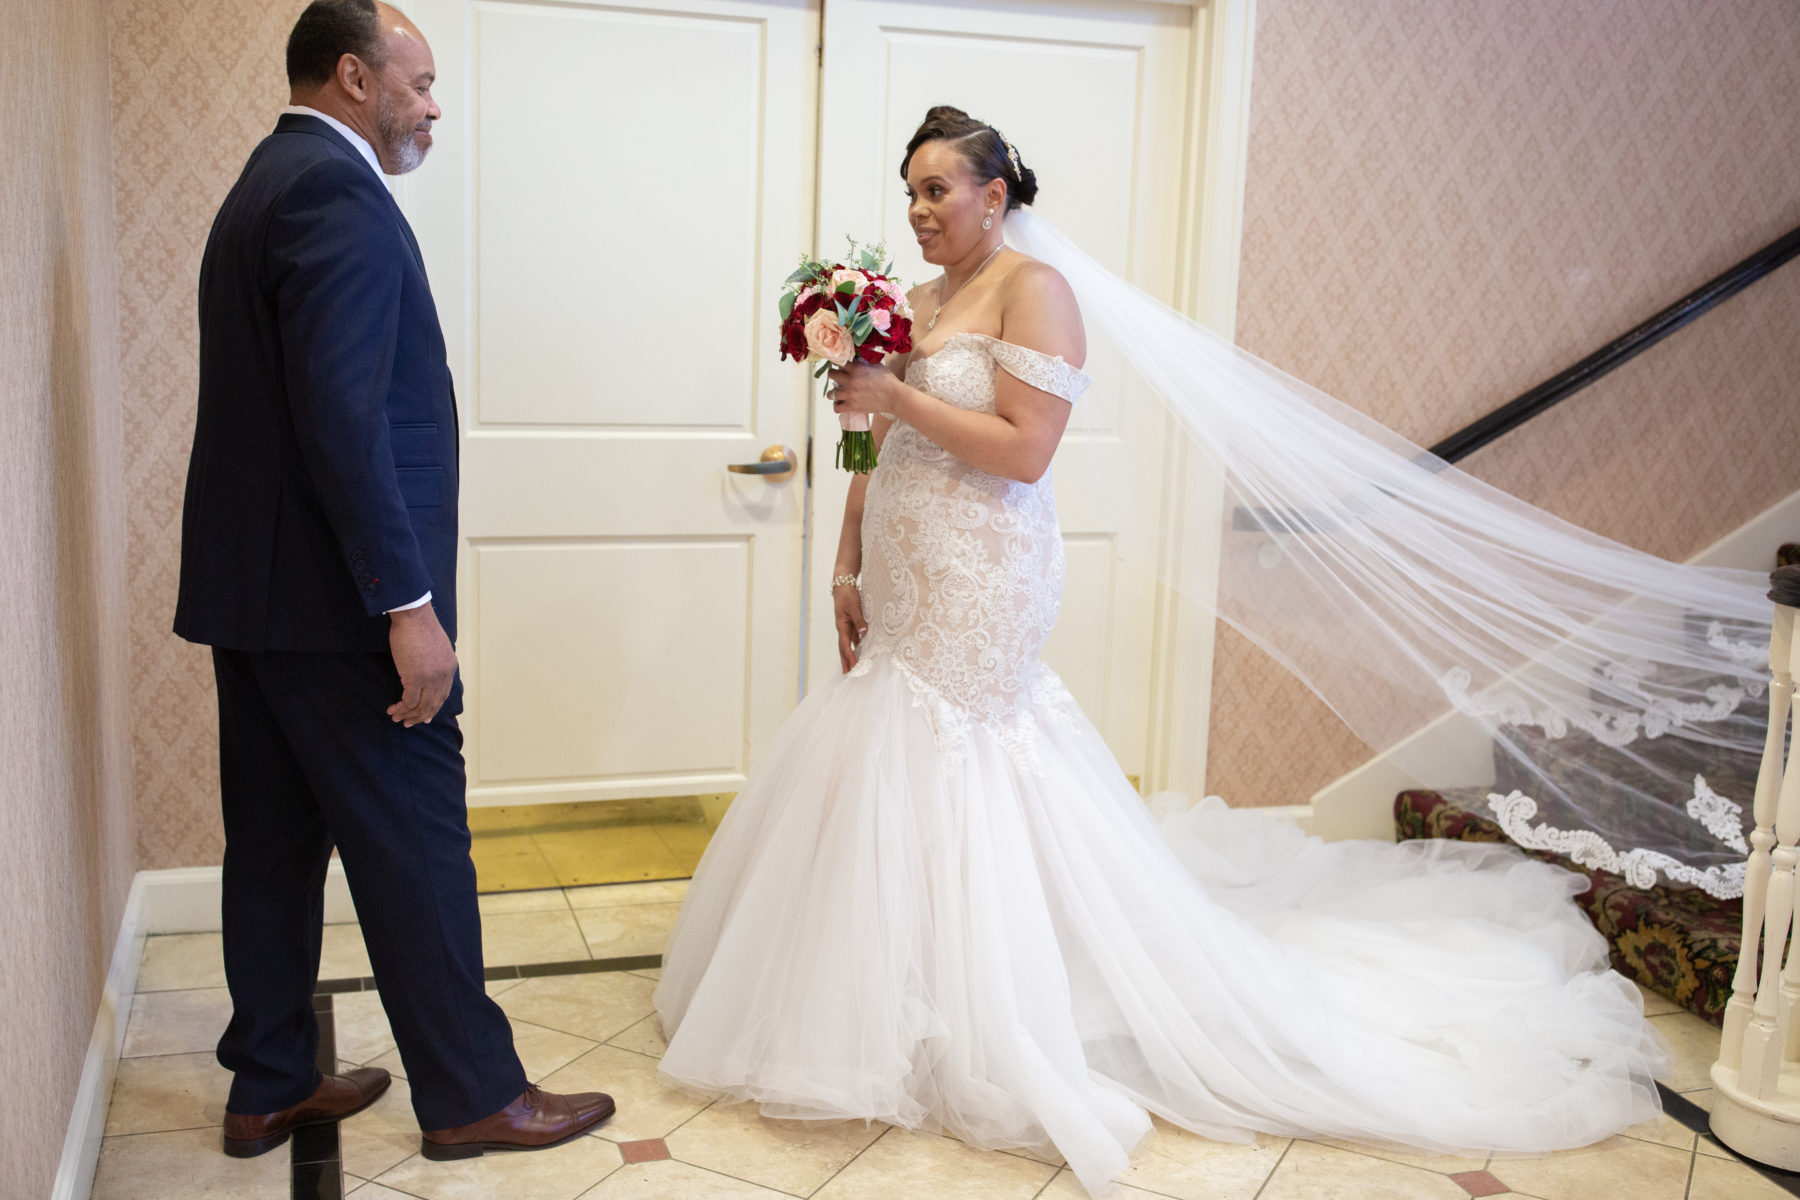 Father daughter first look: Luxurious Stone Rivers Country Club Wedding featured on Nashville Bride Guide